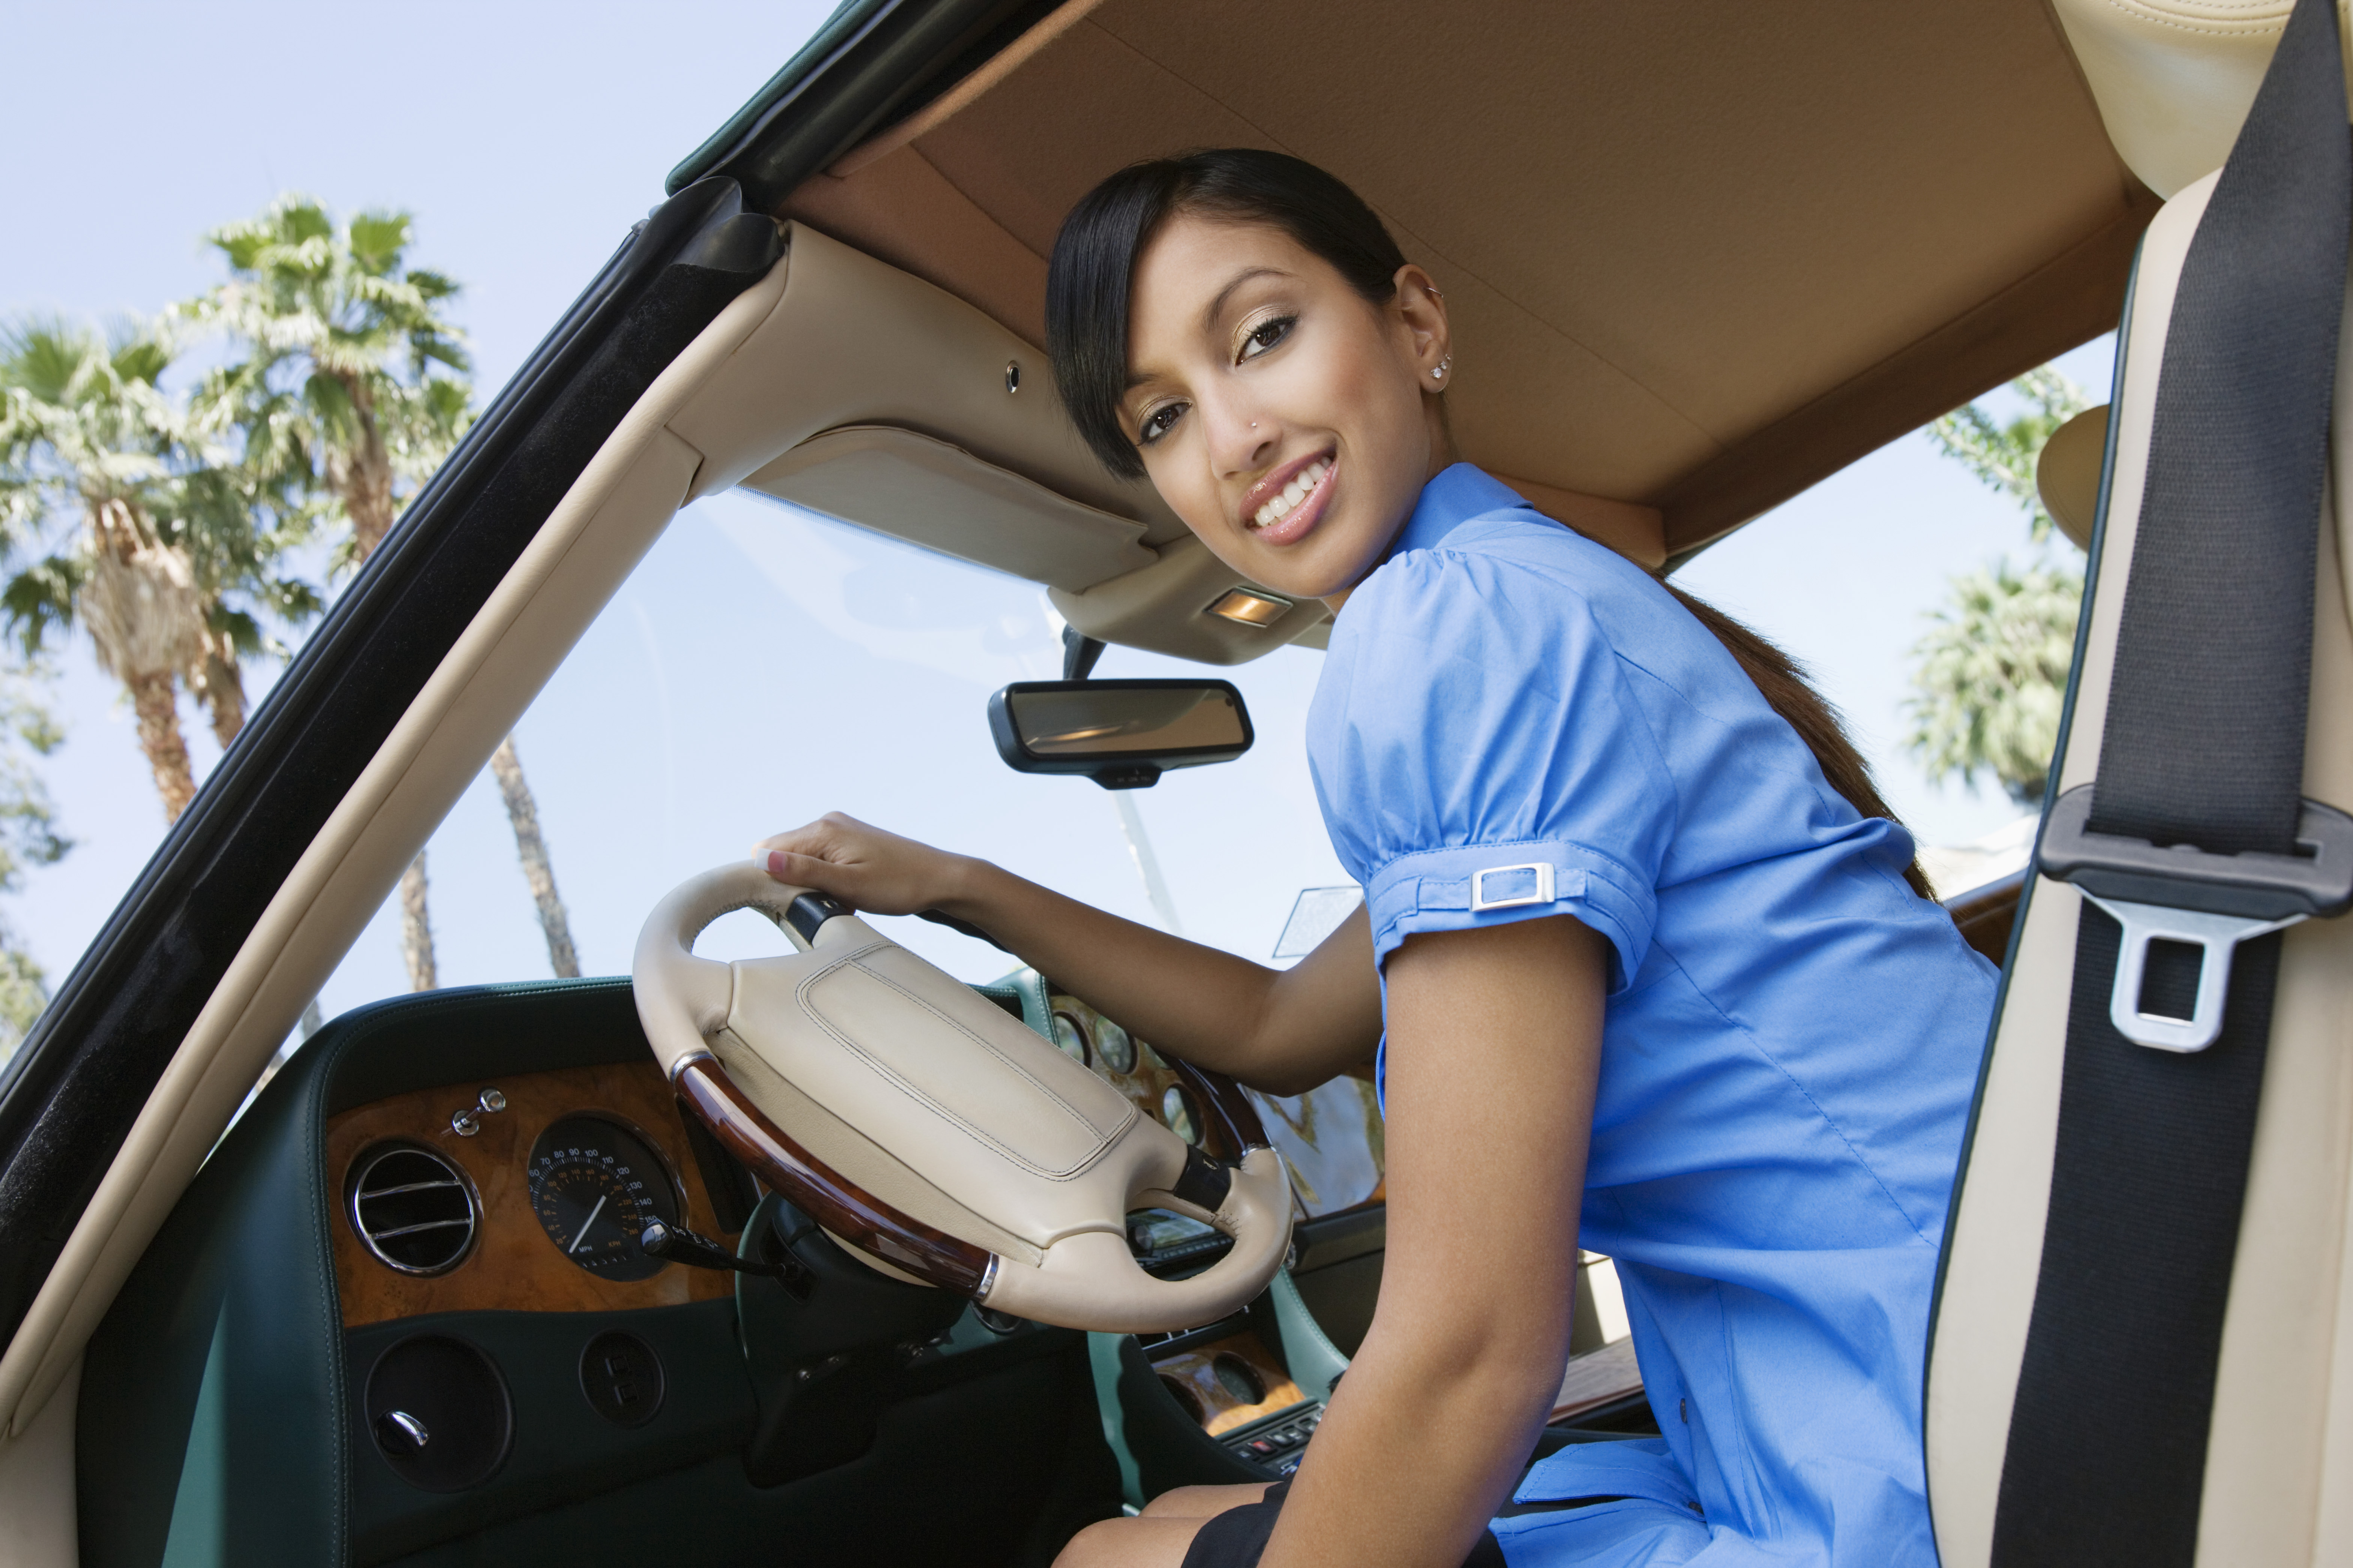 When your teen driver gets behind the wheel help make sure they understand car safety.